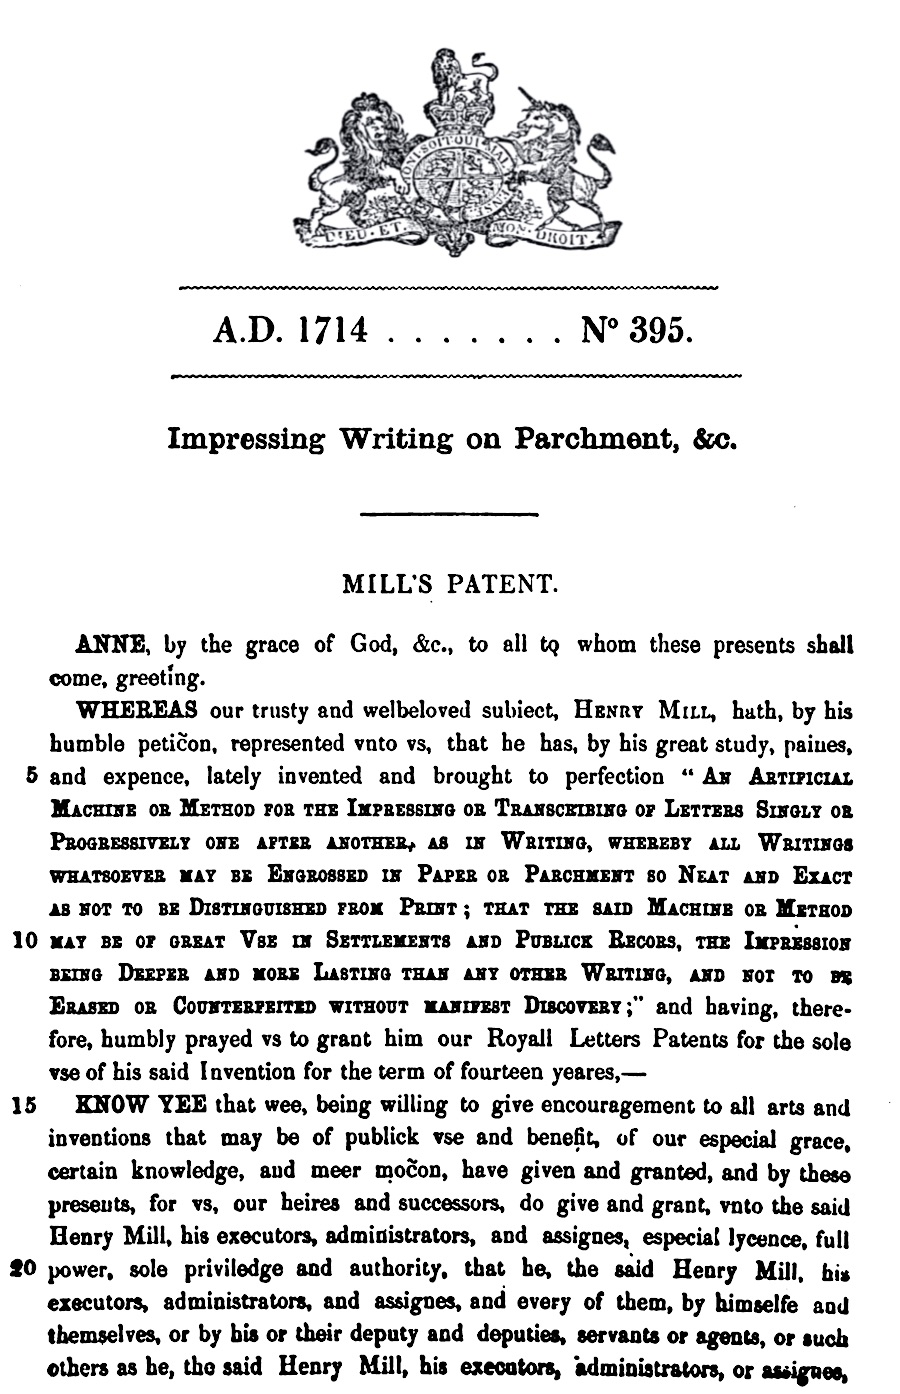 """henry mill's patent for """"impressing writing on parchment"""""""